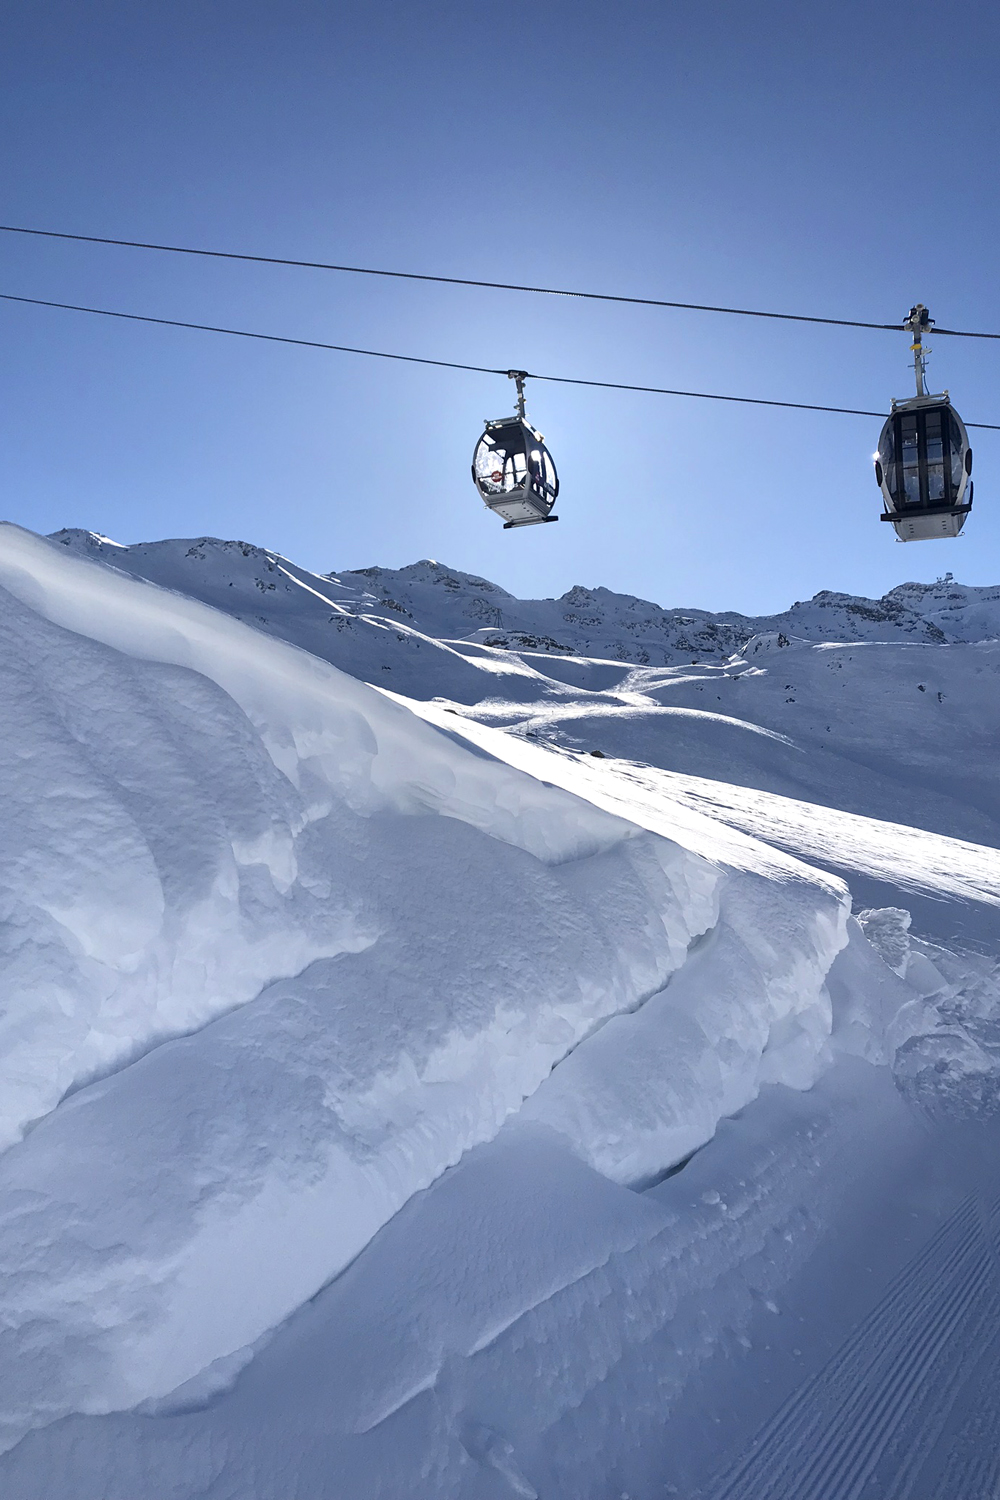 Blue skies skiing in Les Trois Vallees, France - travel & lifestyle blog